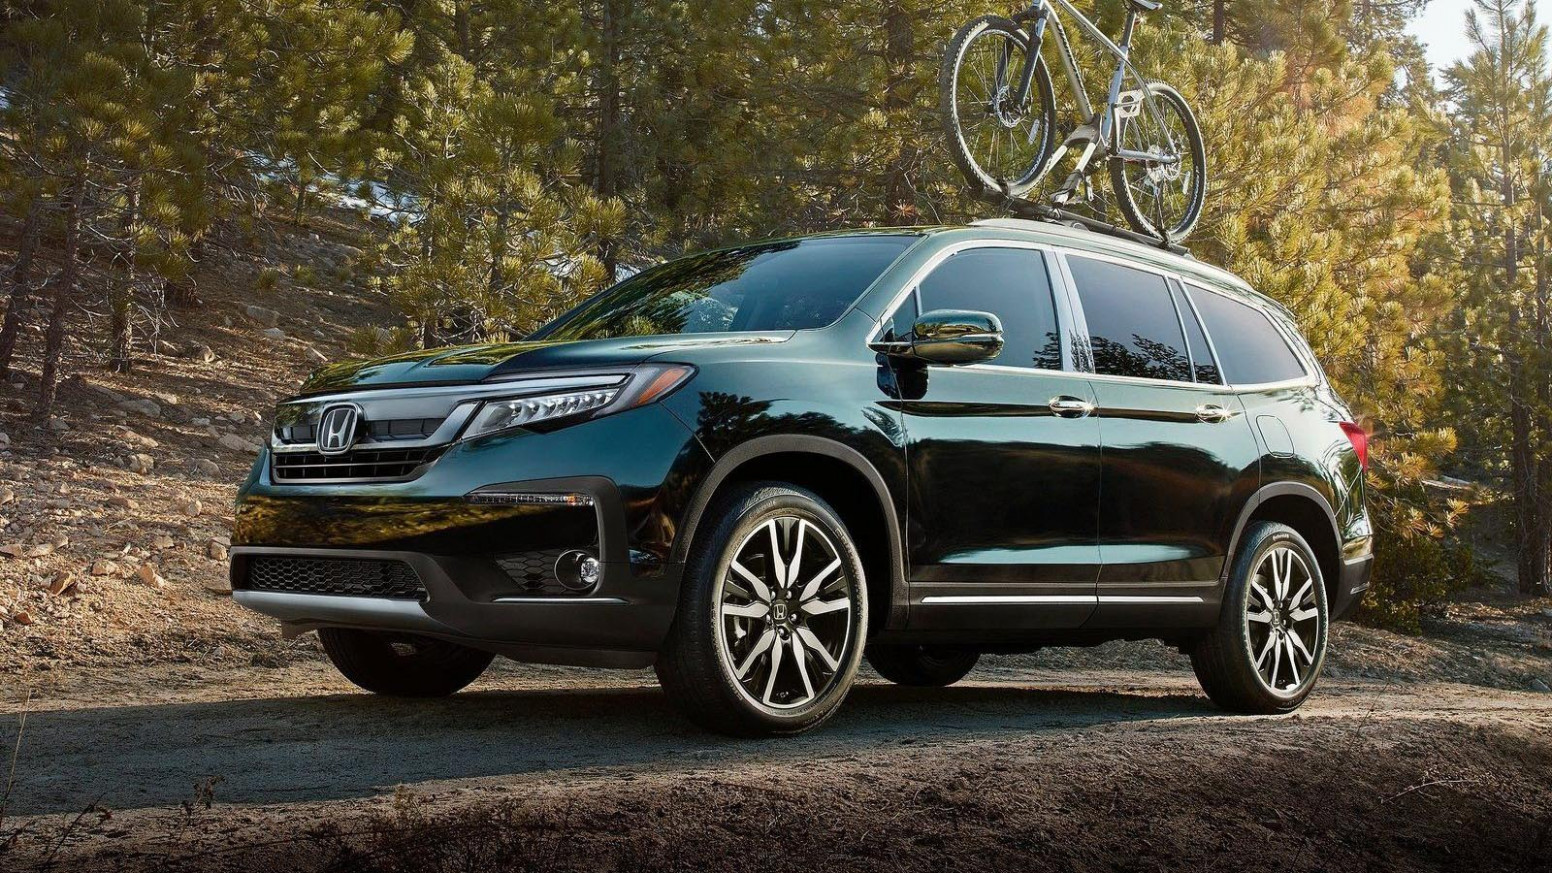 Exterior and Interior 2022 Honda Pilot